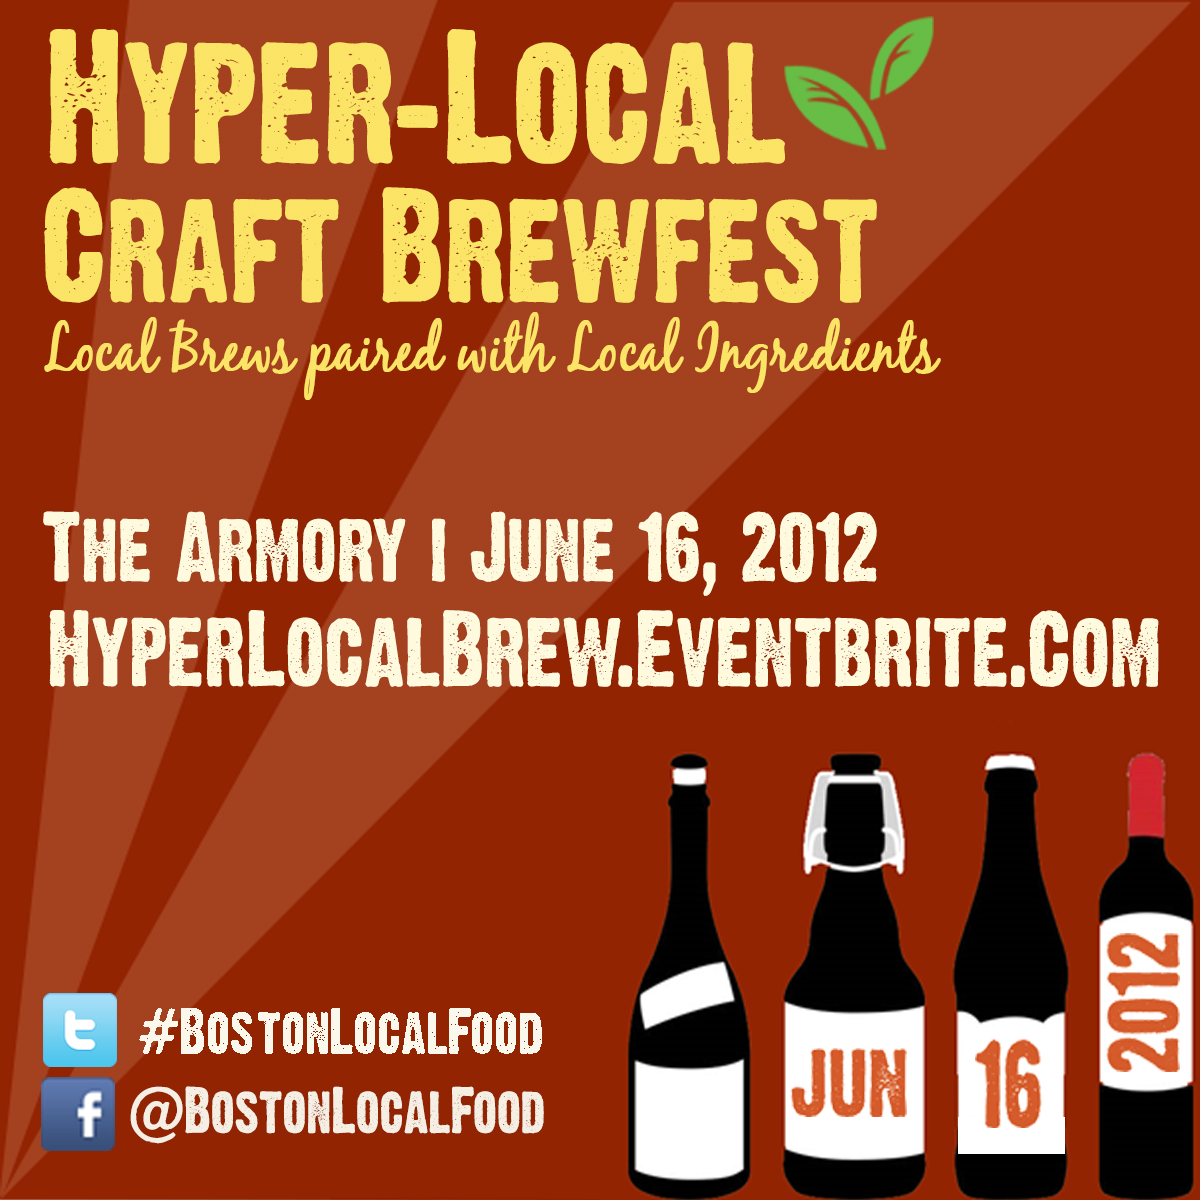 Hyper-Local Craft Brewfest